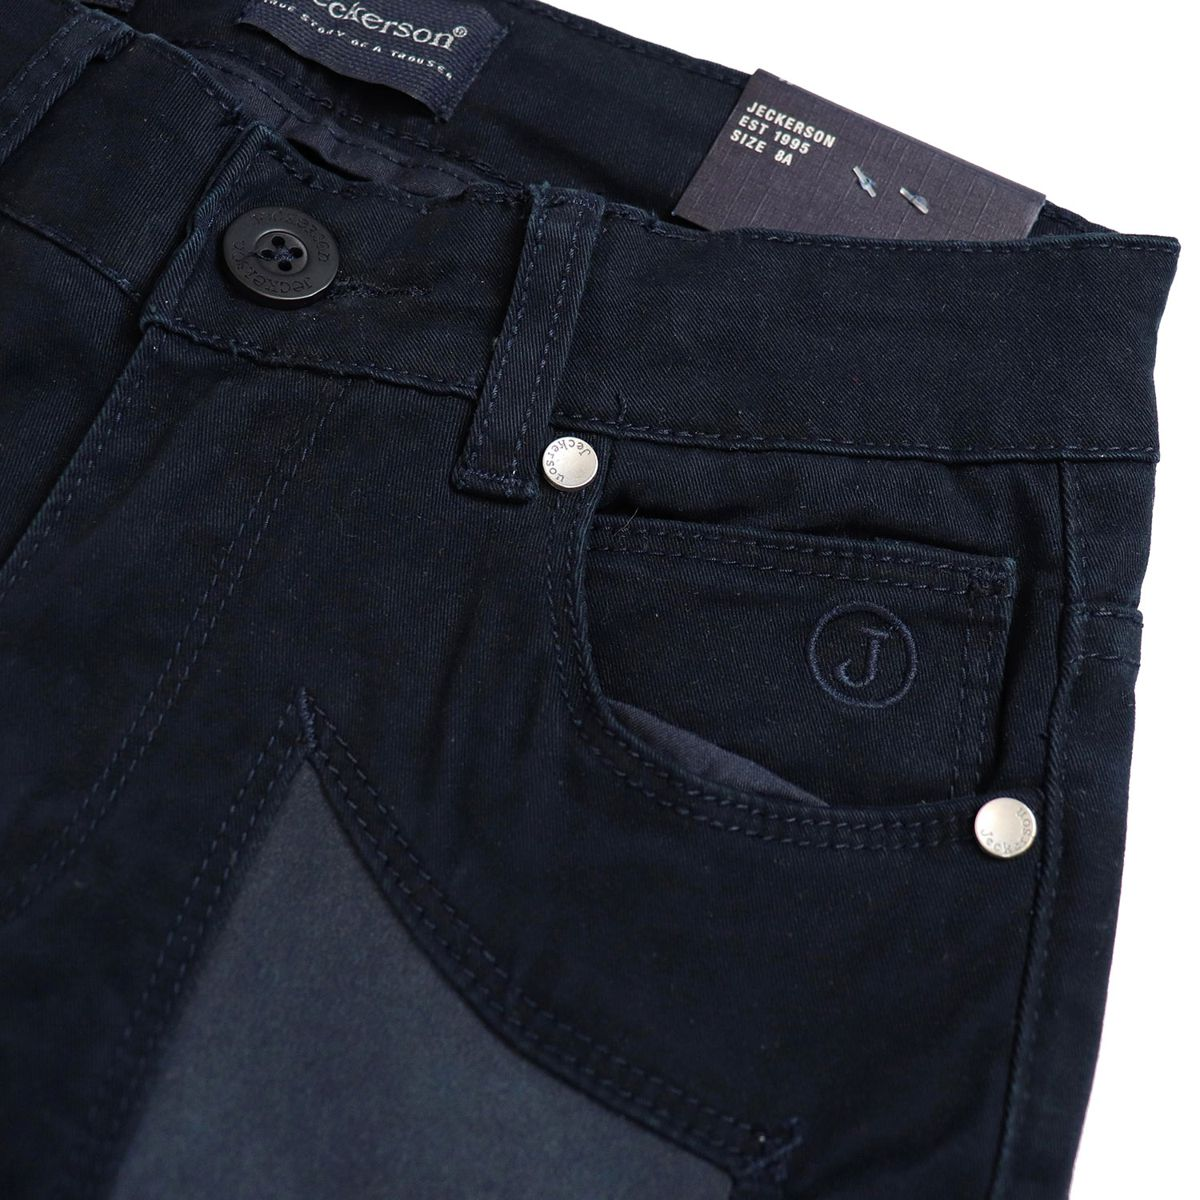 Cotton trousers with light patches Navy Jeckerson